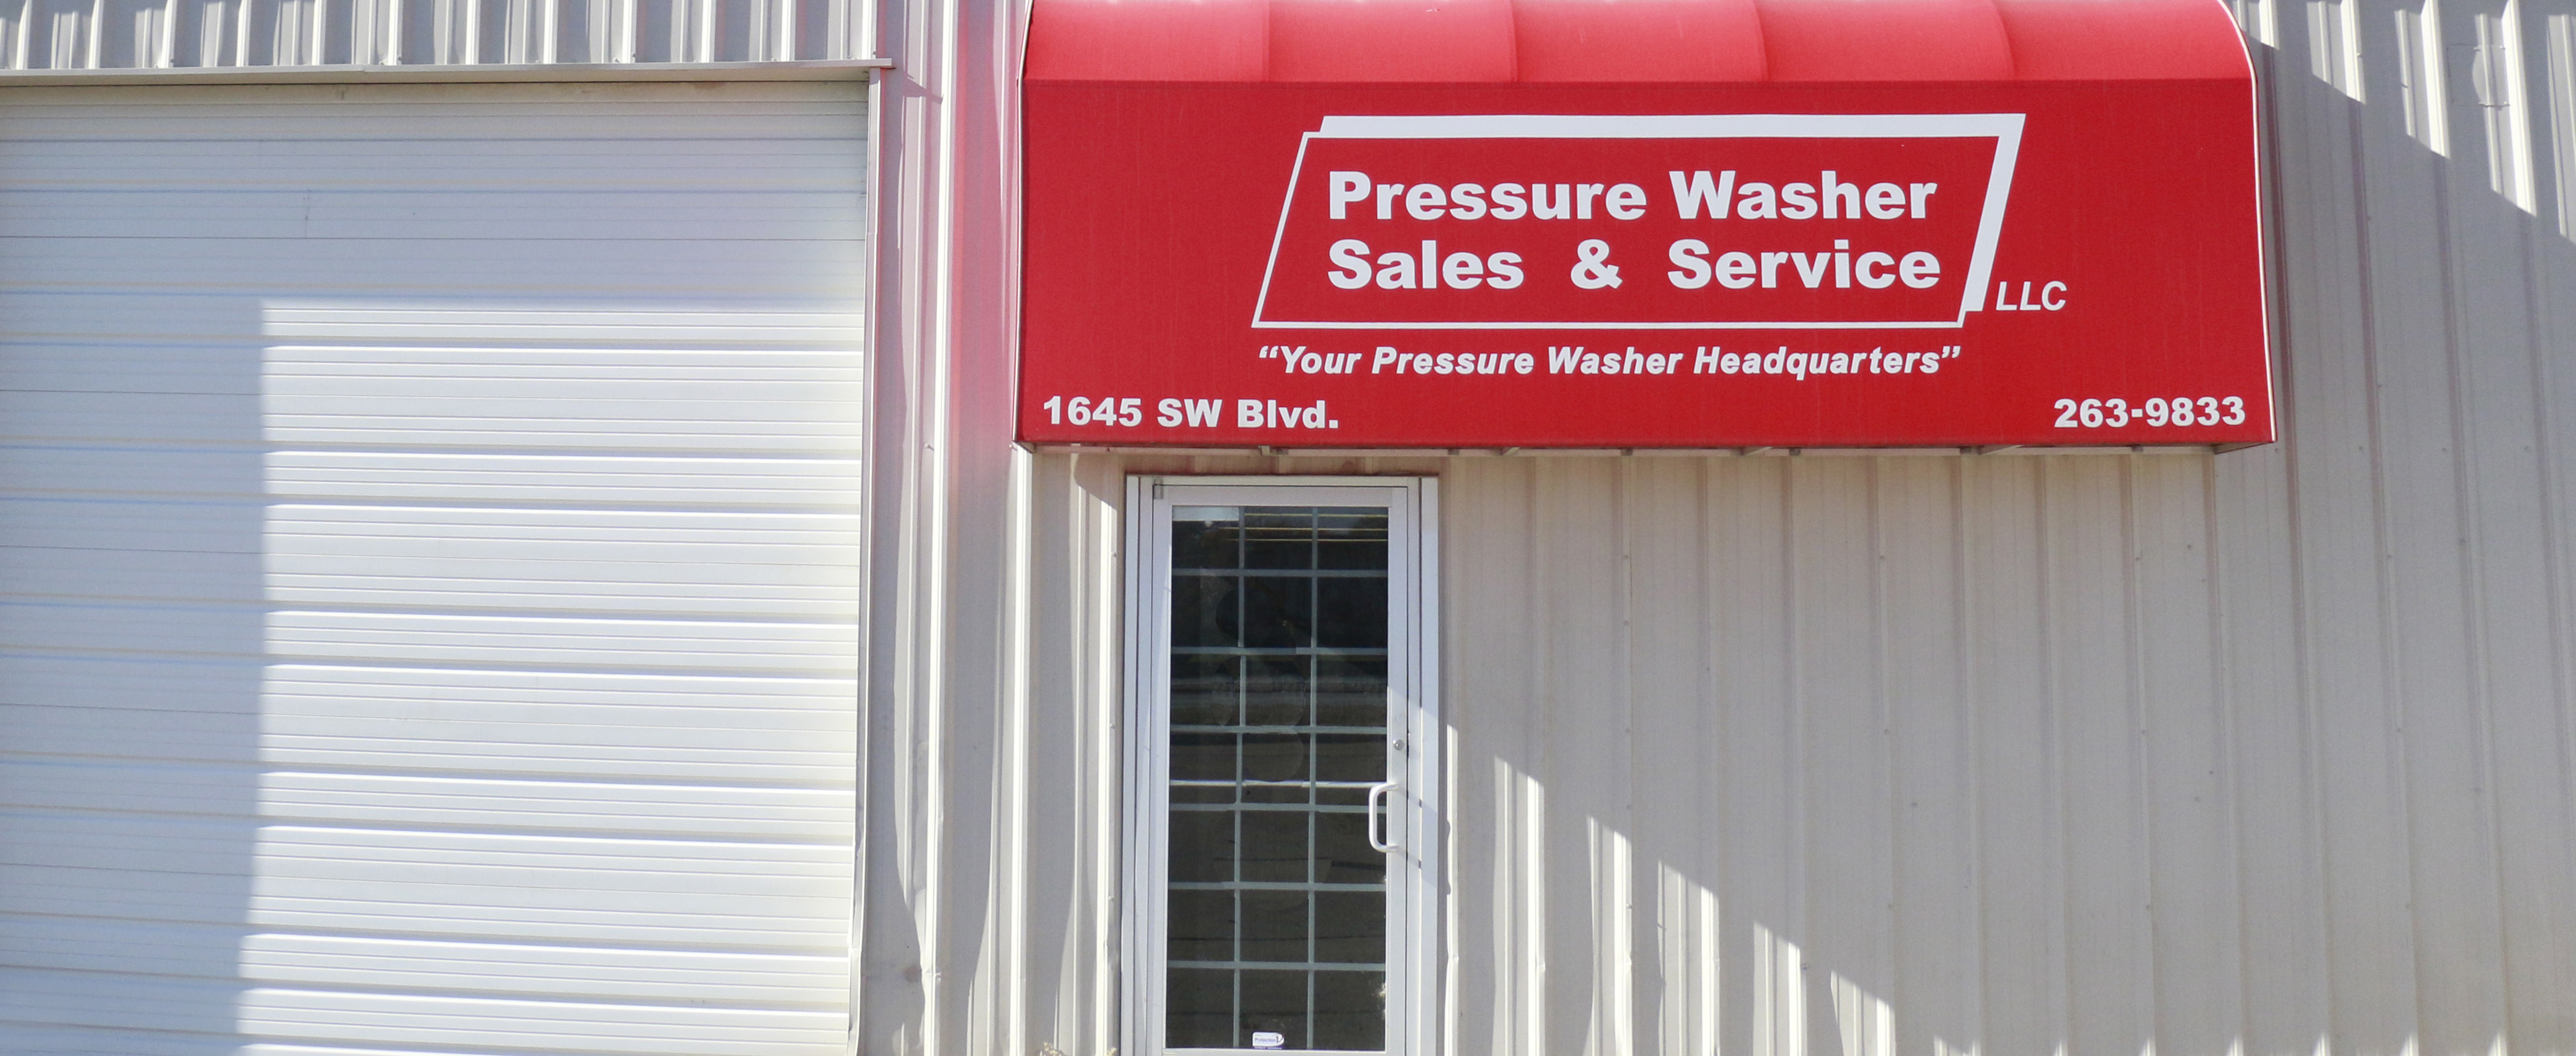 Wichita Kansas Pressure Washer Sales & Service